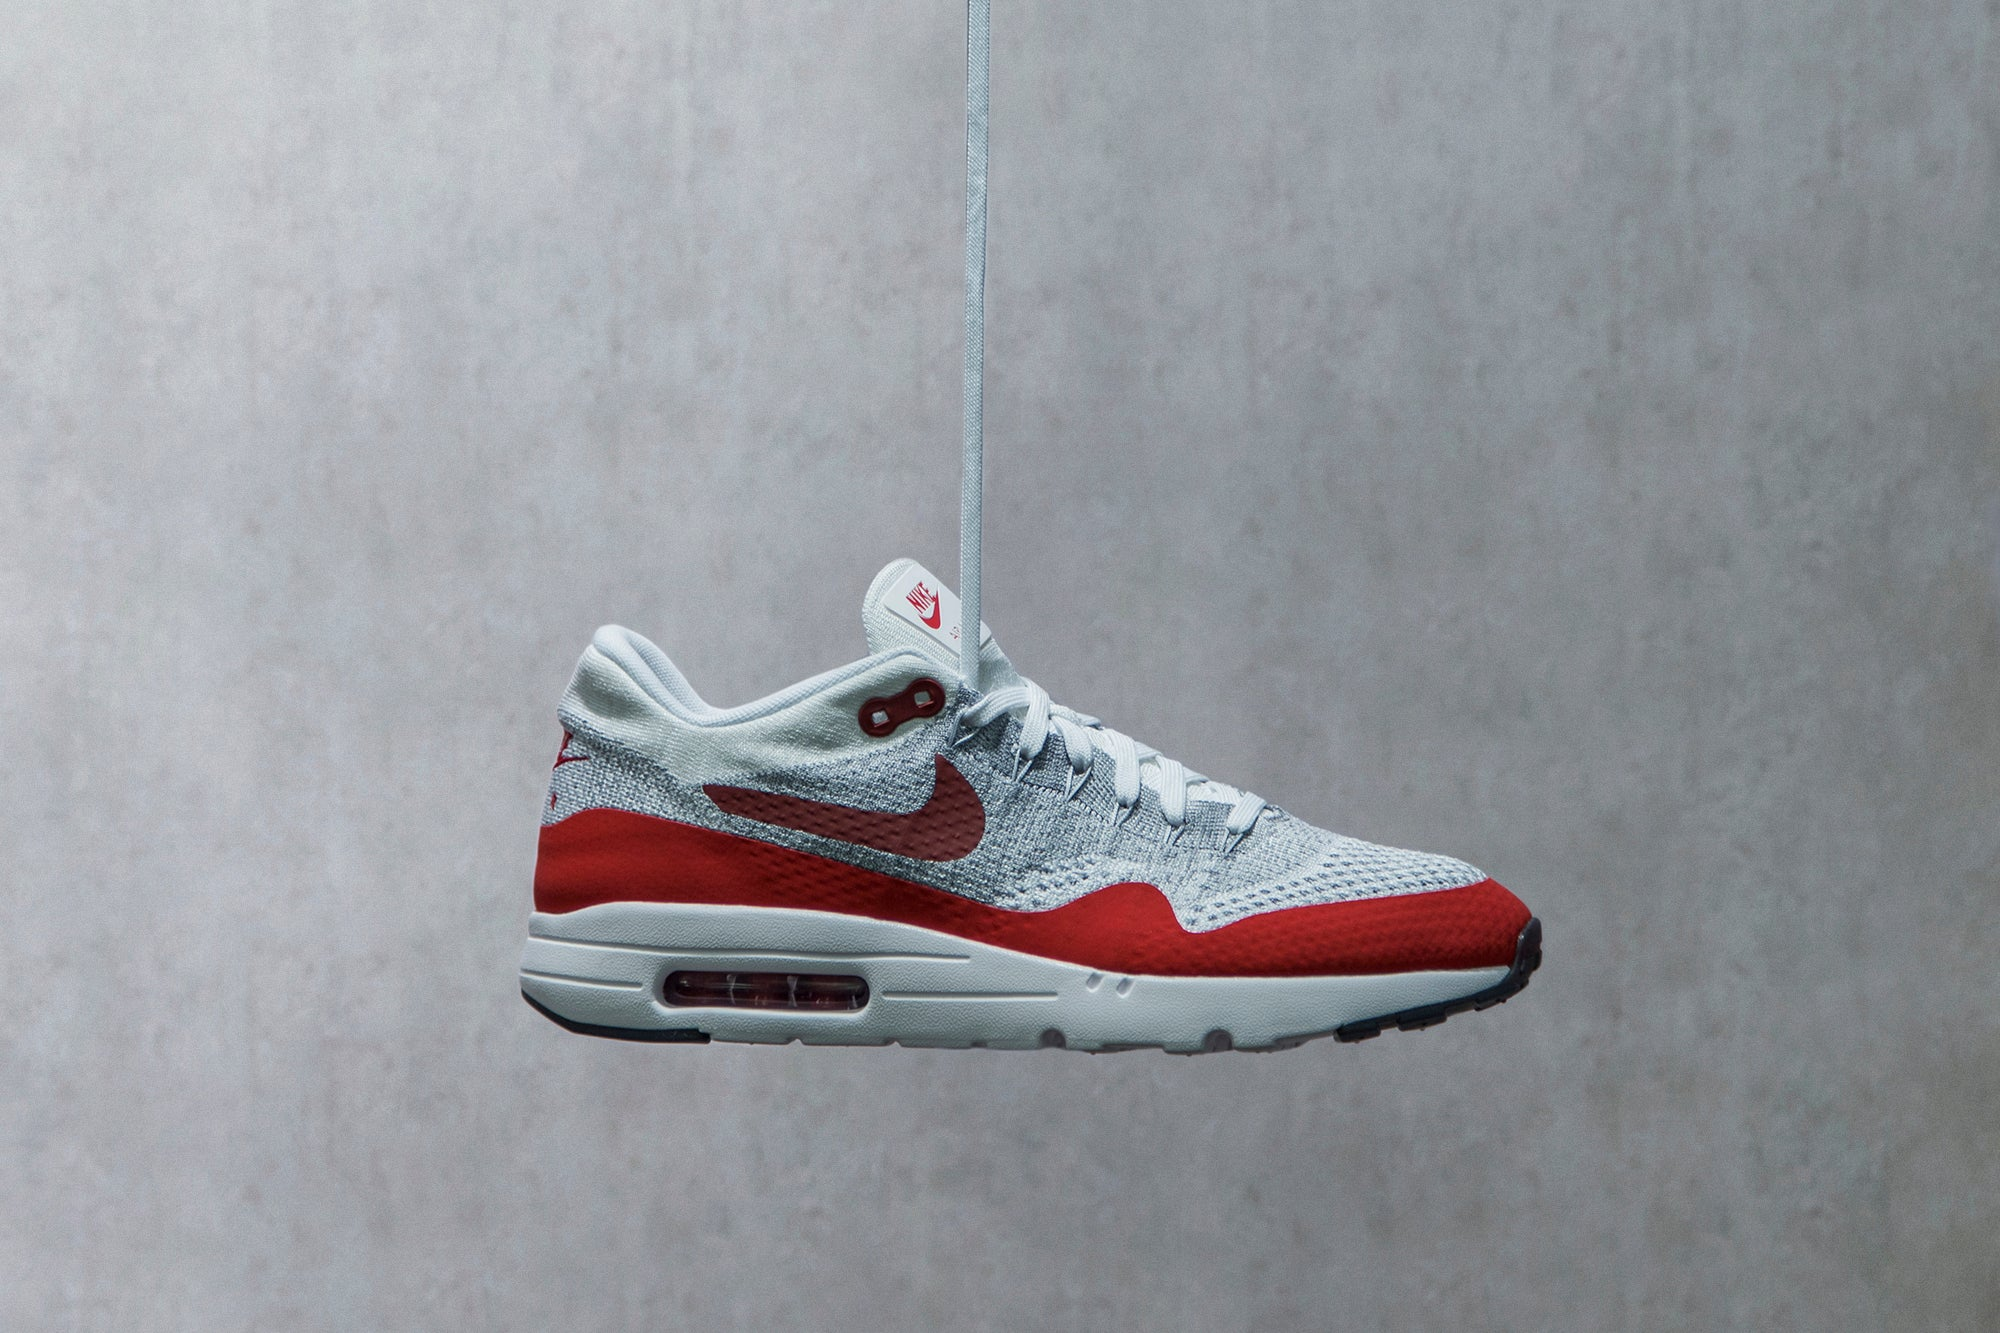 The Nike Air Max 1 Ultra Flyknit Releases Tomorrow at The